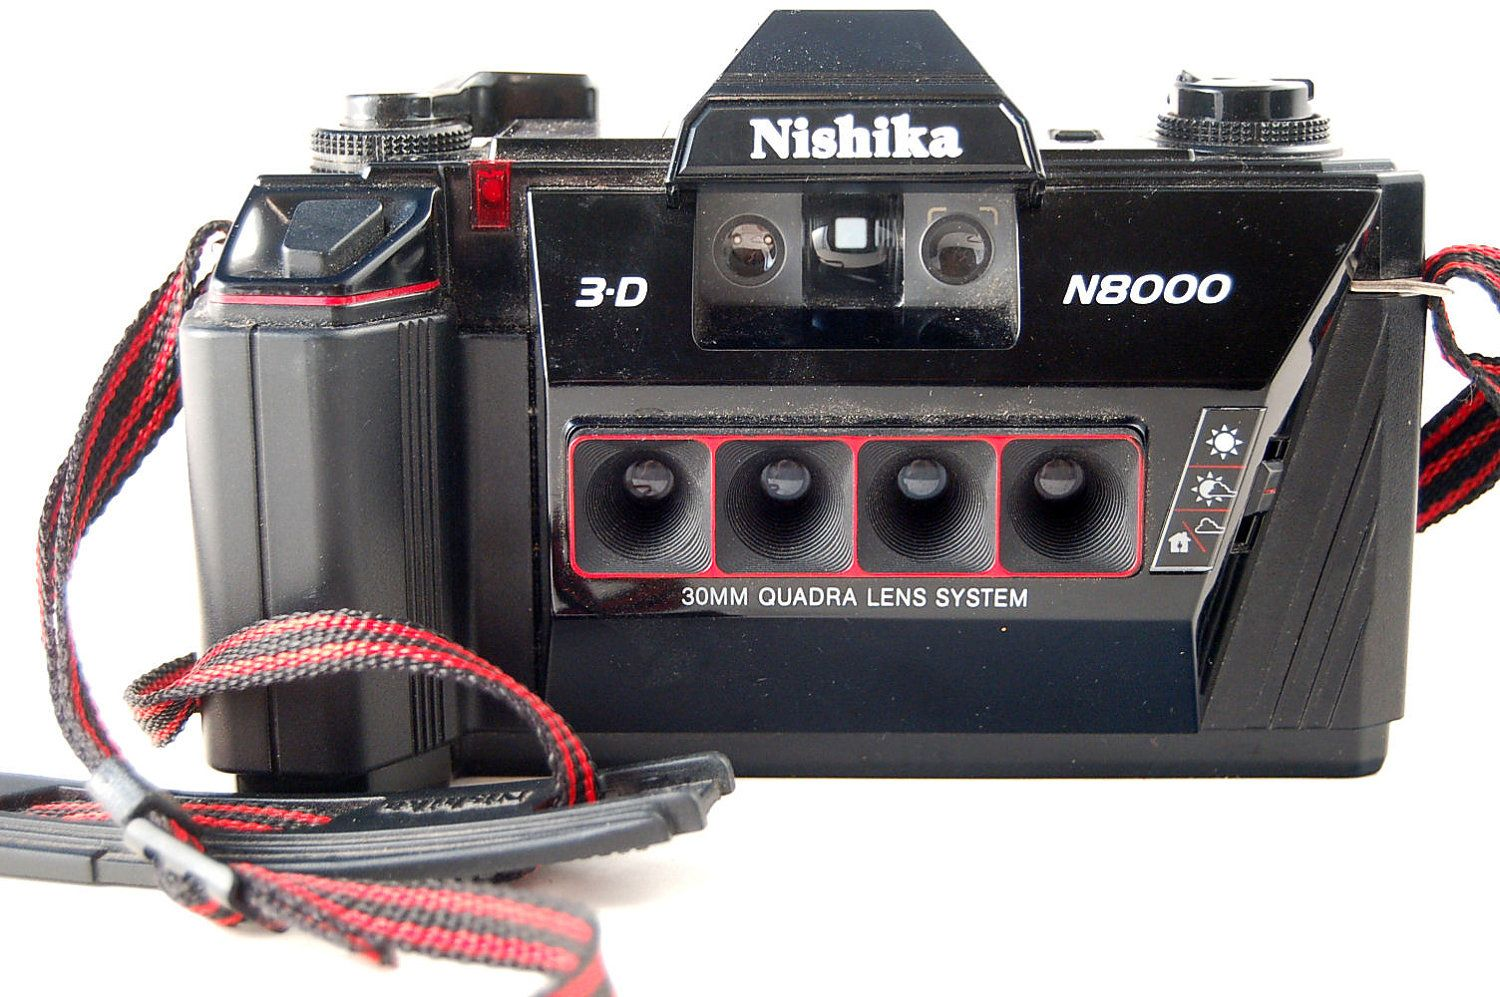 WORKING Nishika 3D N8000 4 Lens Lomo Toy Lomography Camera | Toy ...